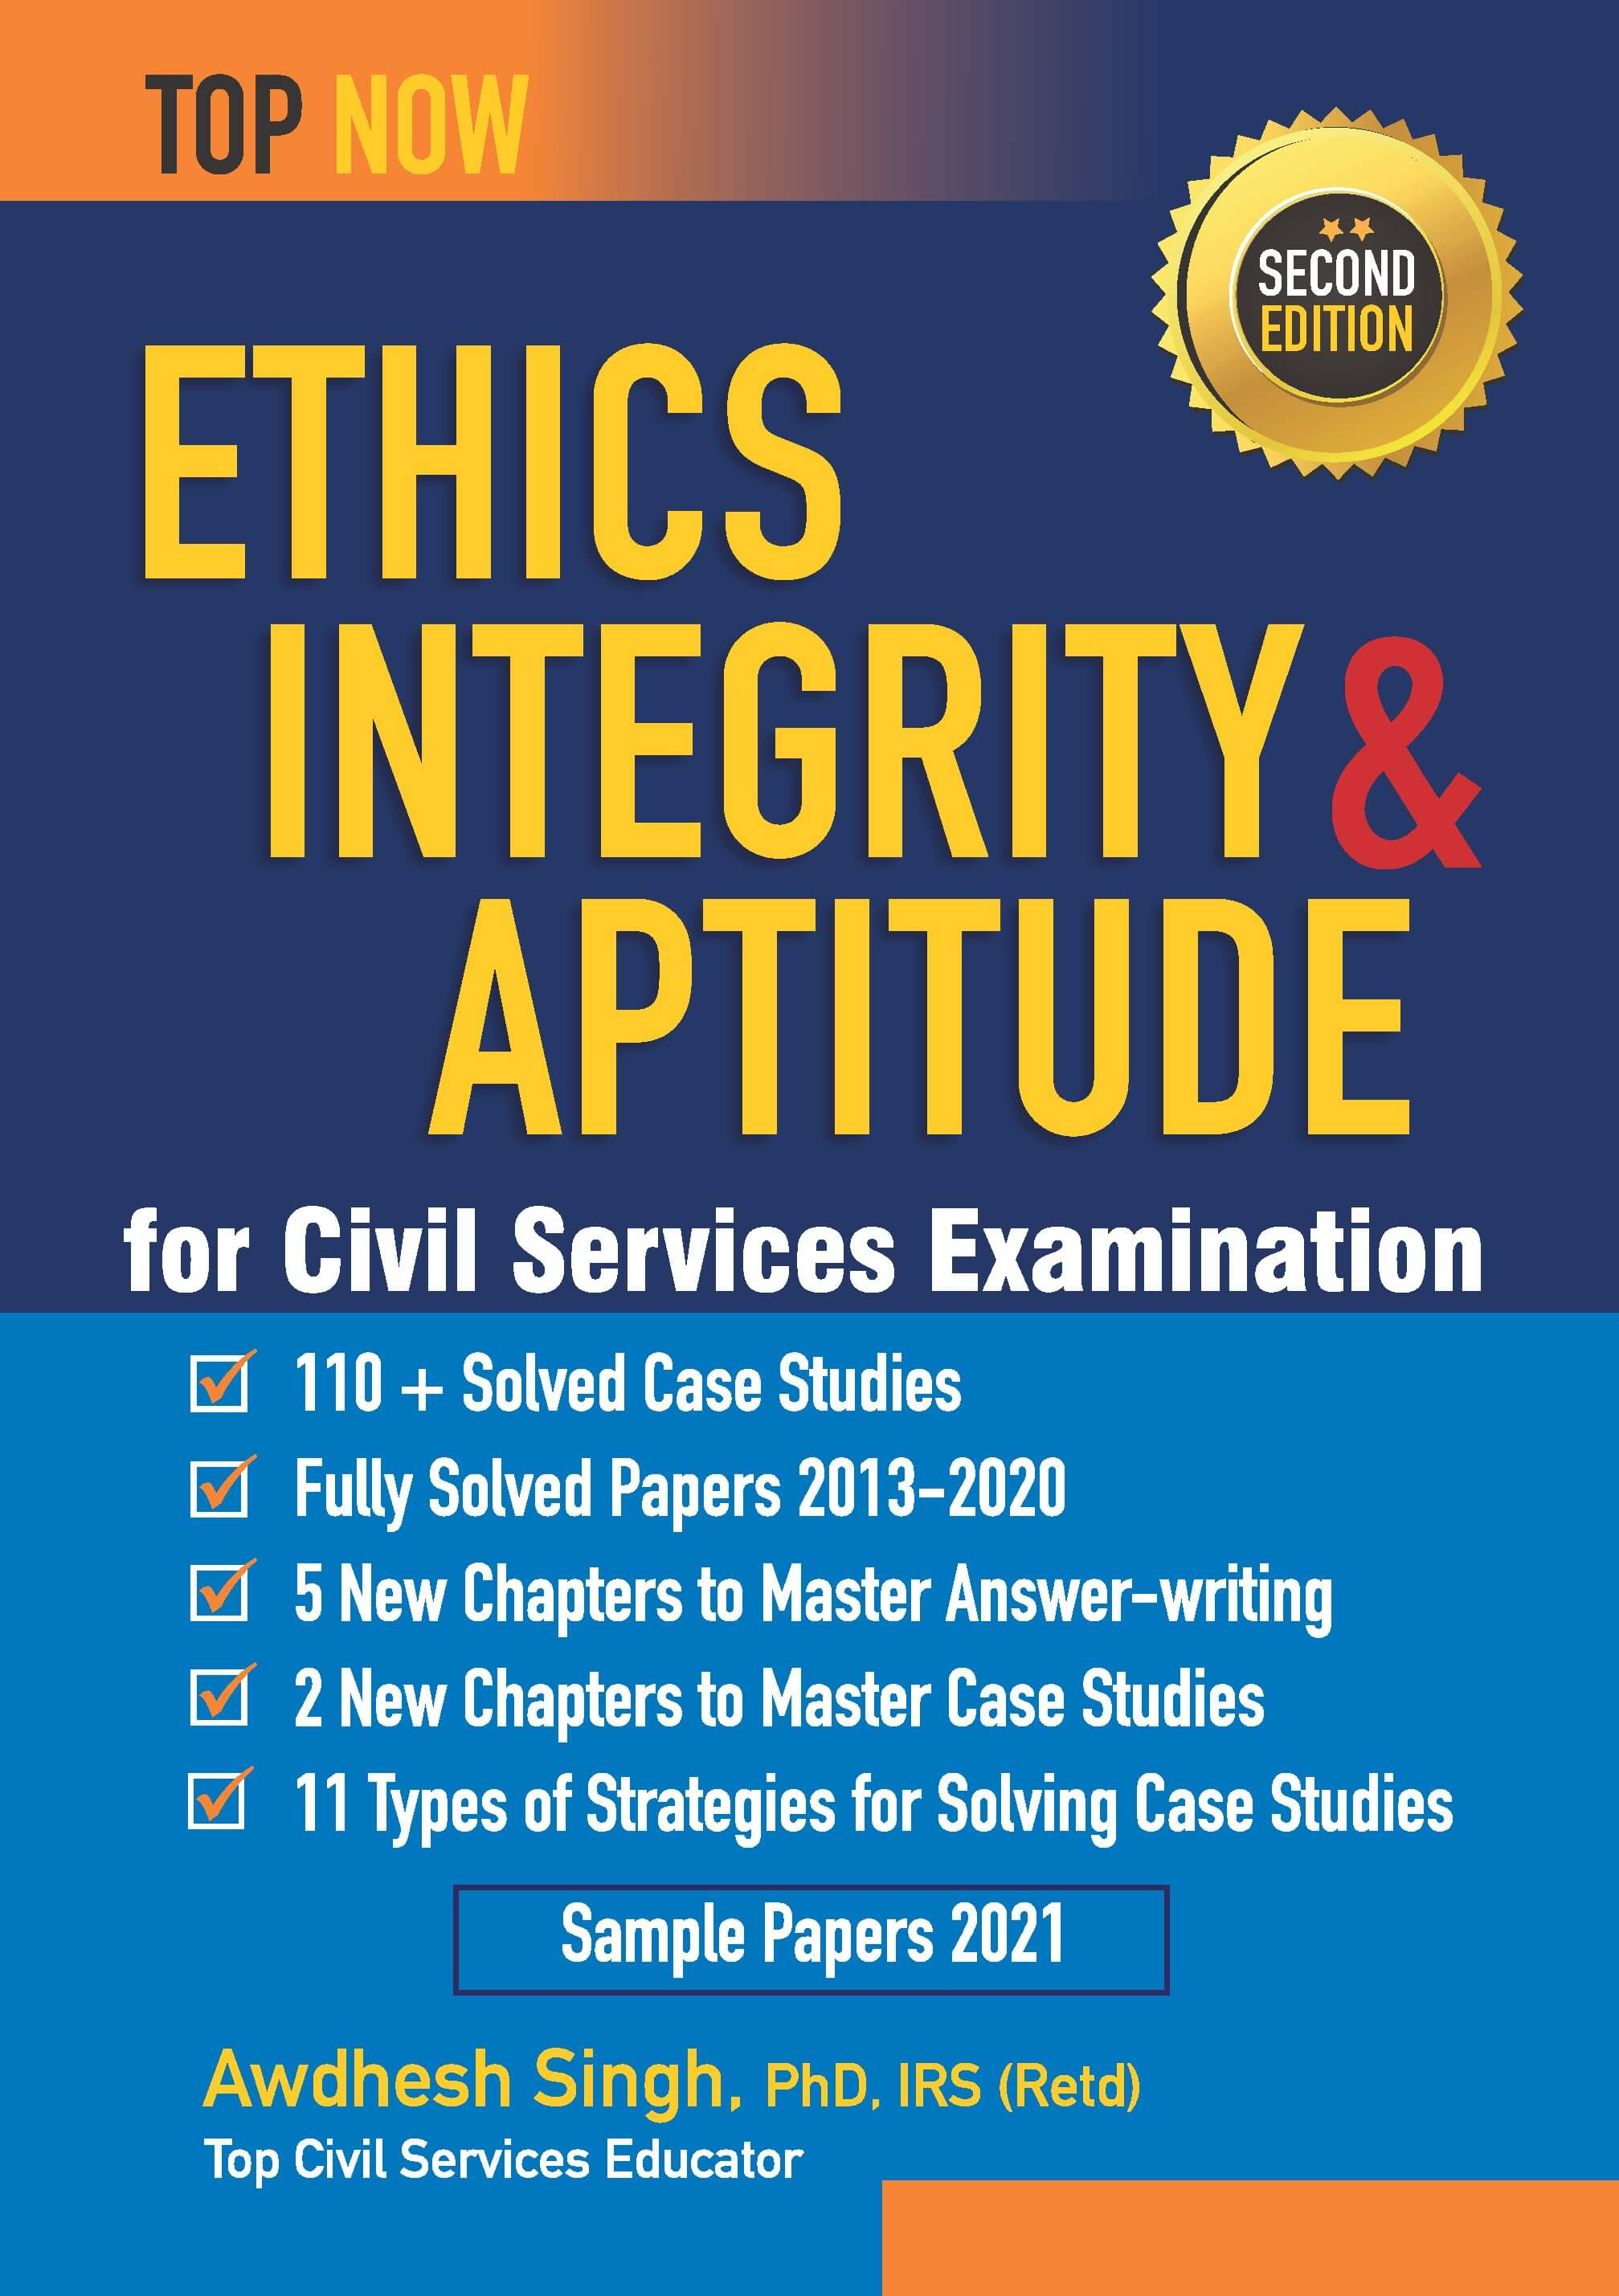 Ethics, Integrity & Aptitude For Civil Services Examination Second Edition: Includes Fully-Solved Papers 2013-20 (Top Now)